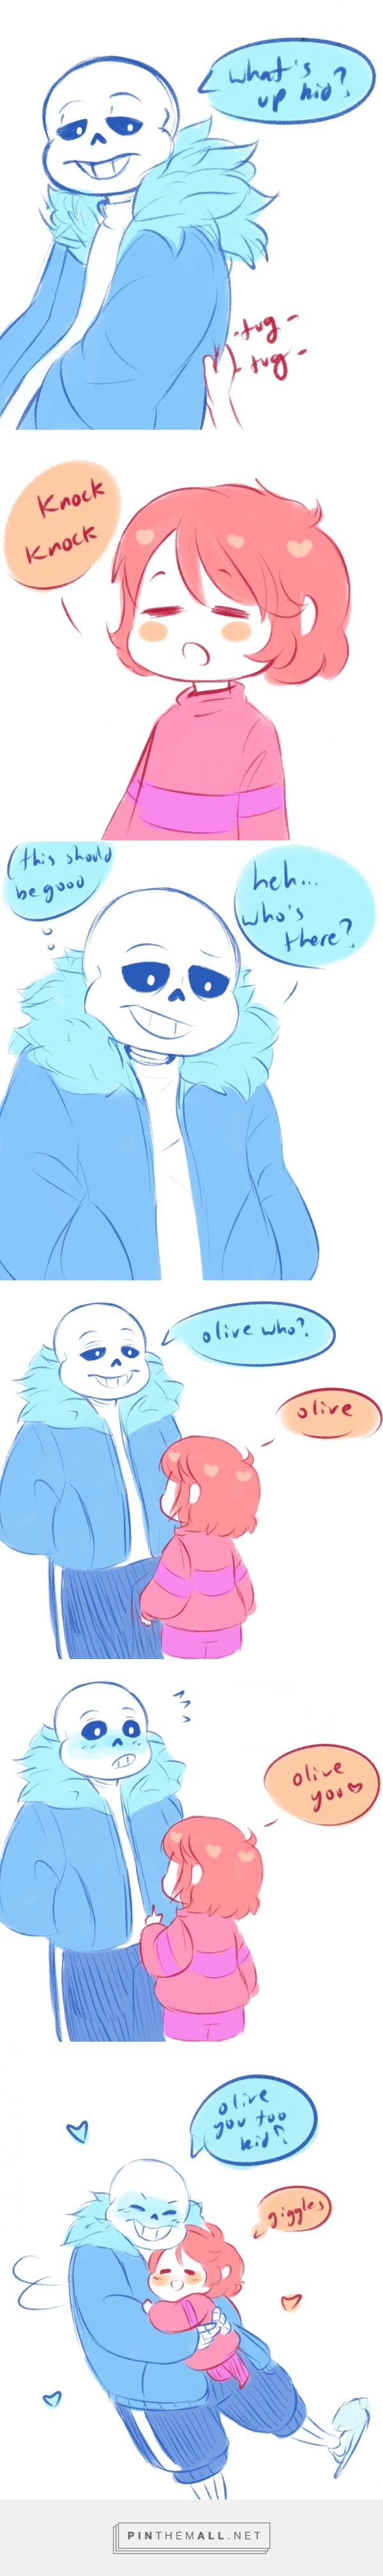 sans and Frisk - comic <= endless screaming at the cuteness =^^=